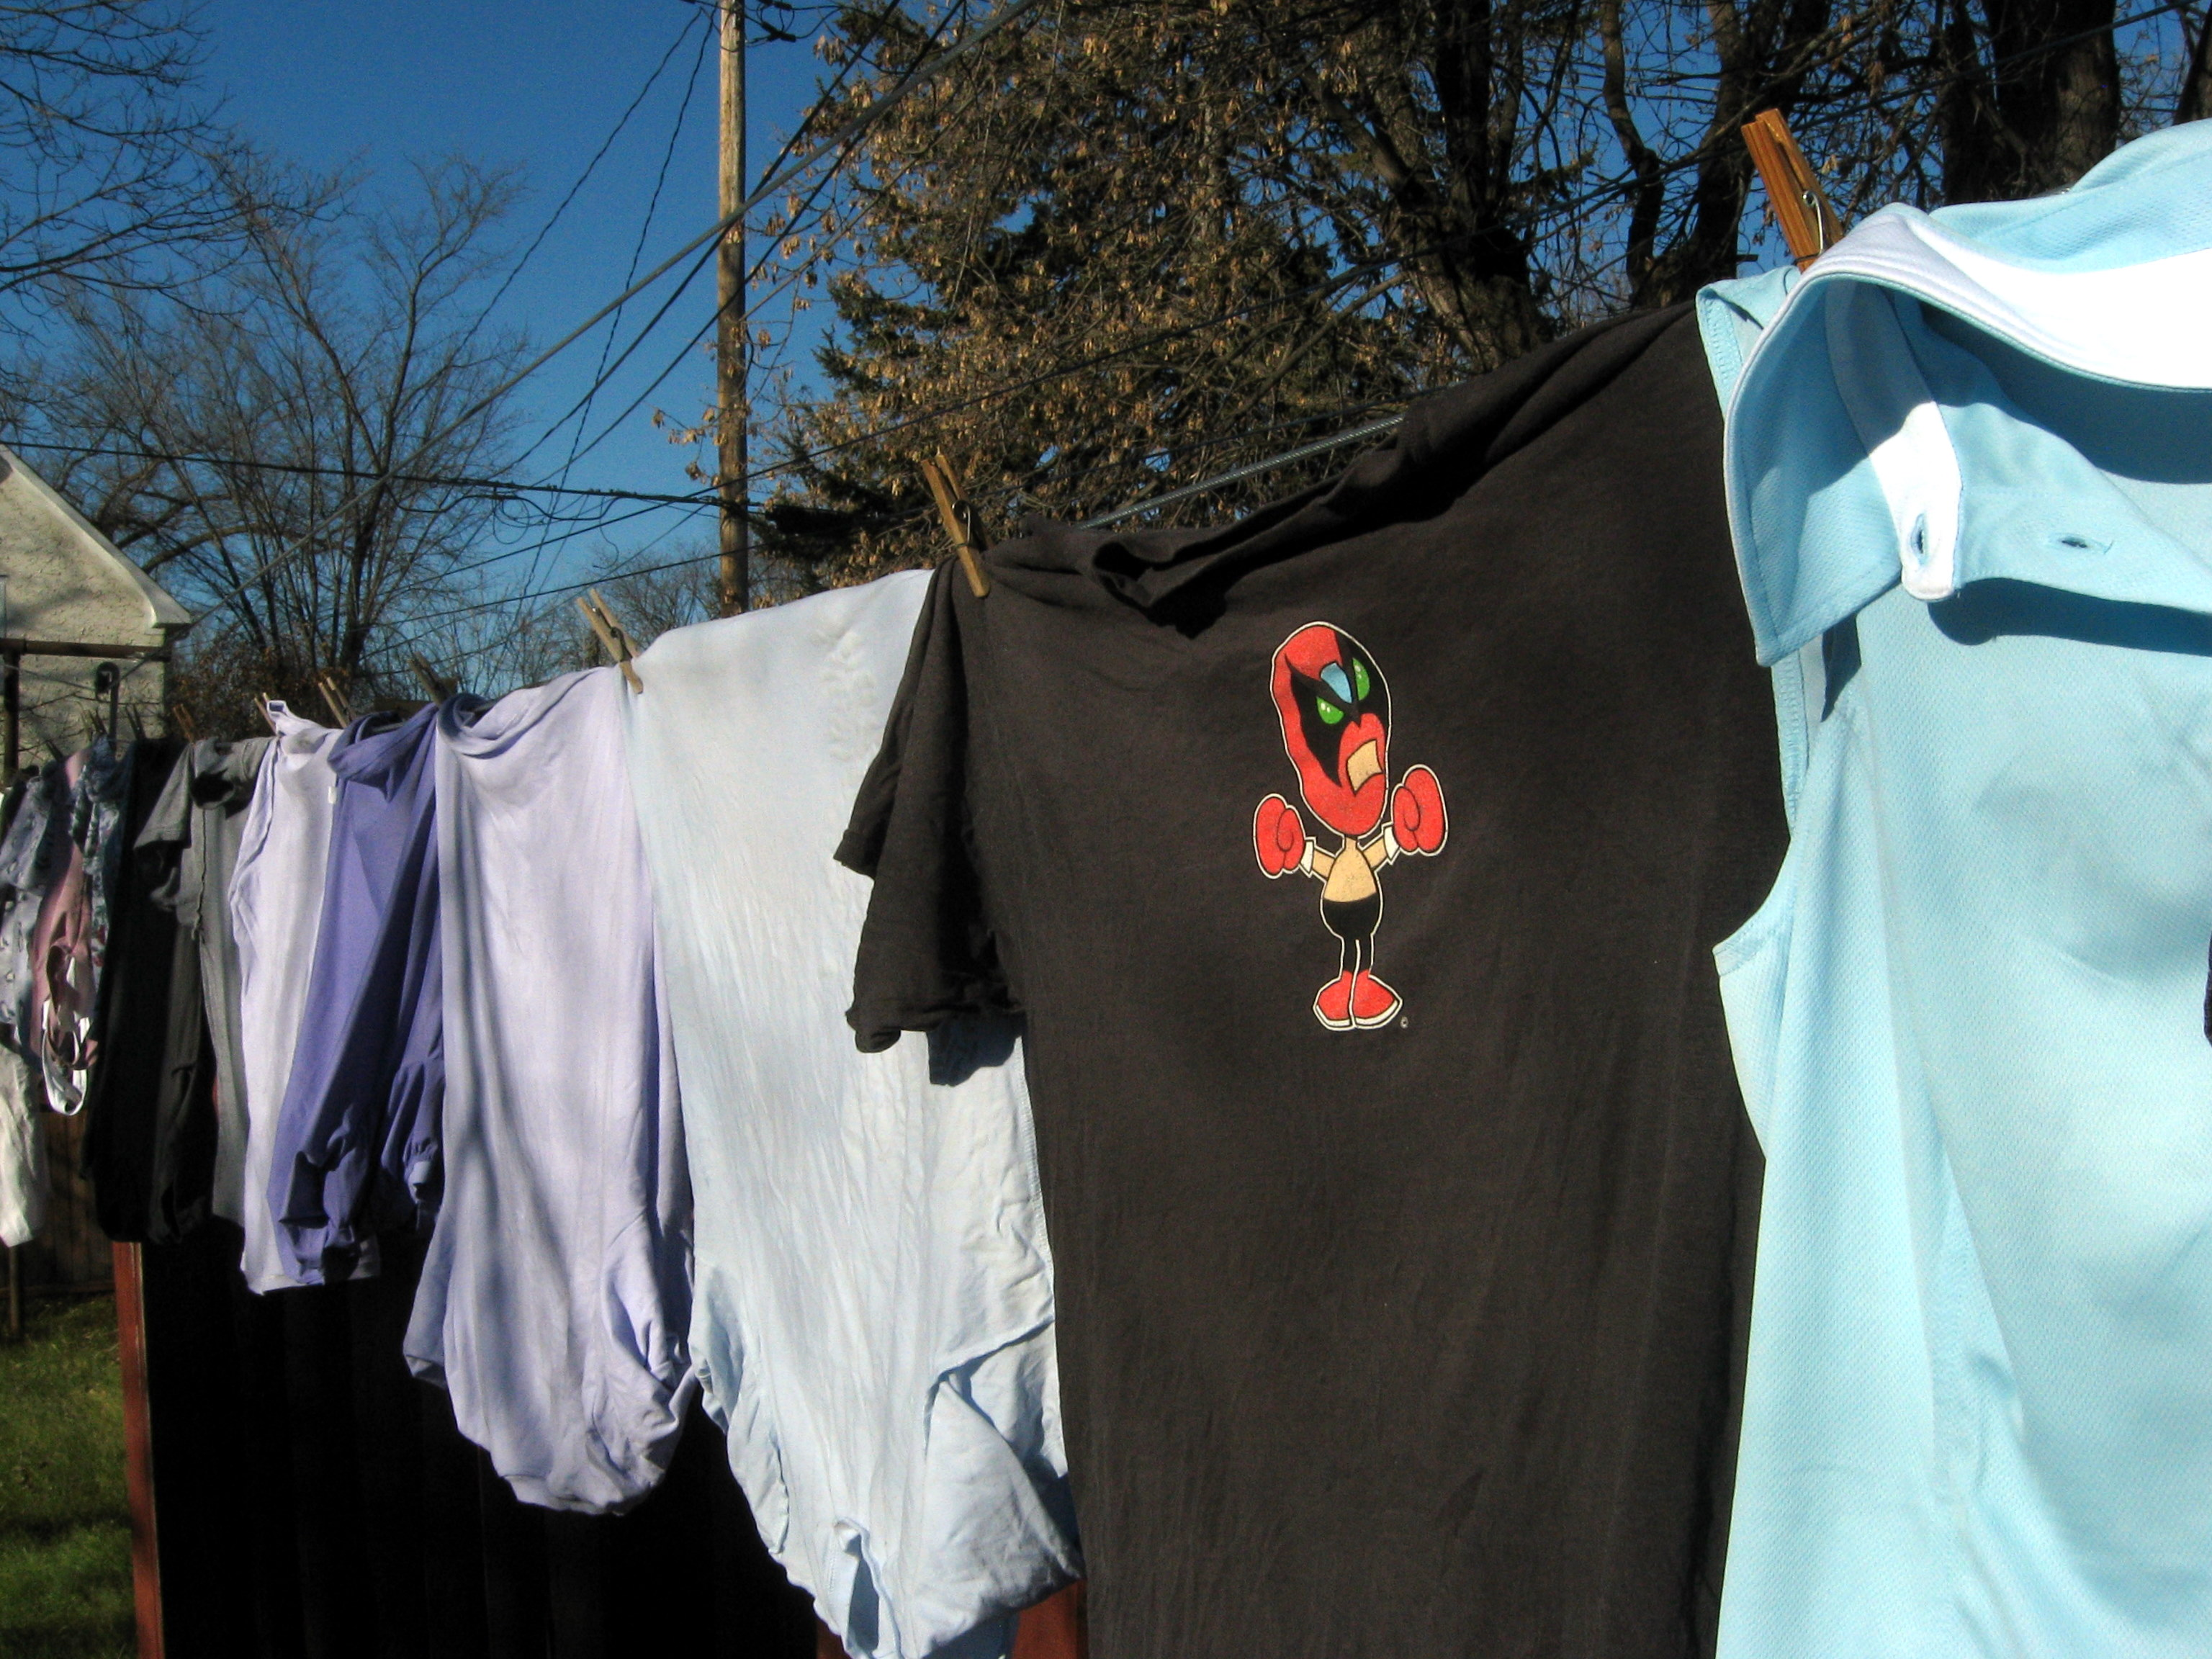 File Photo: Laundry